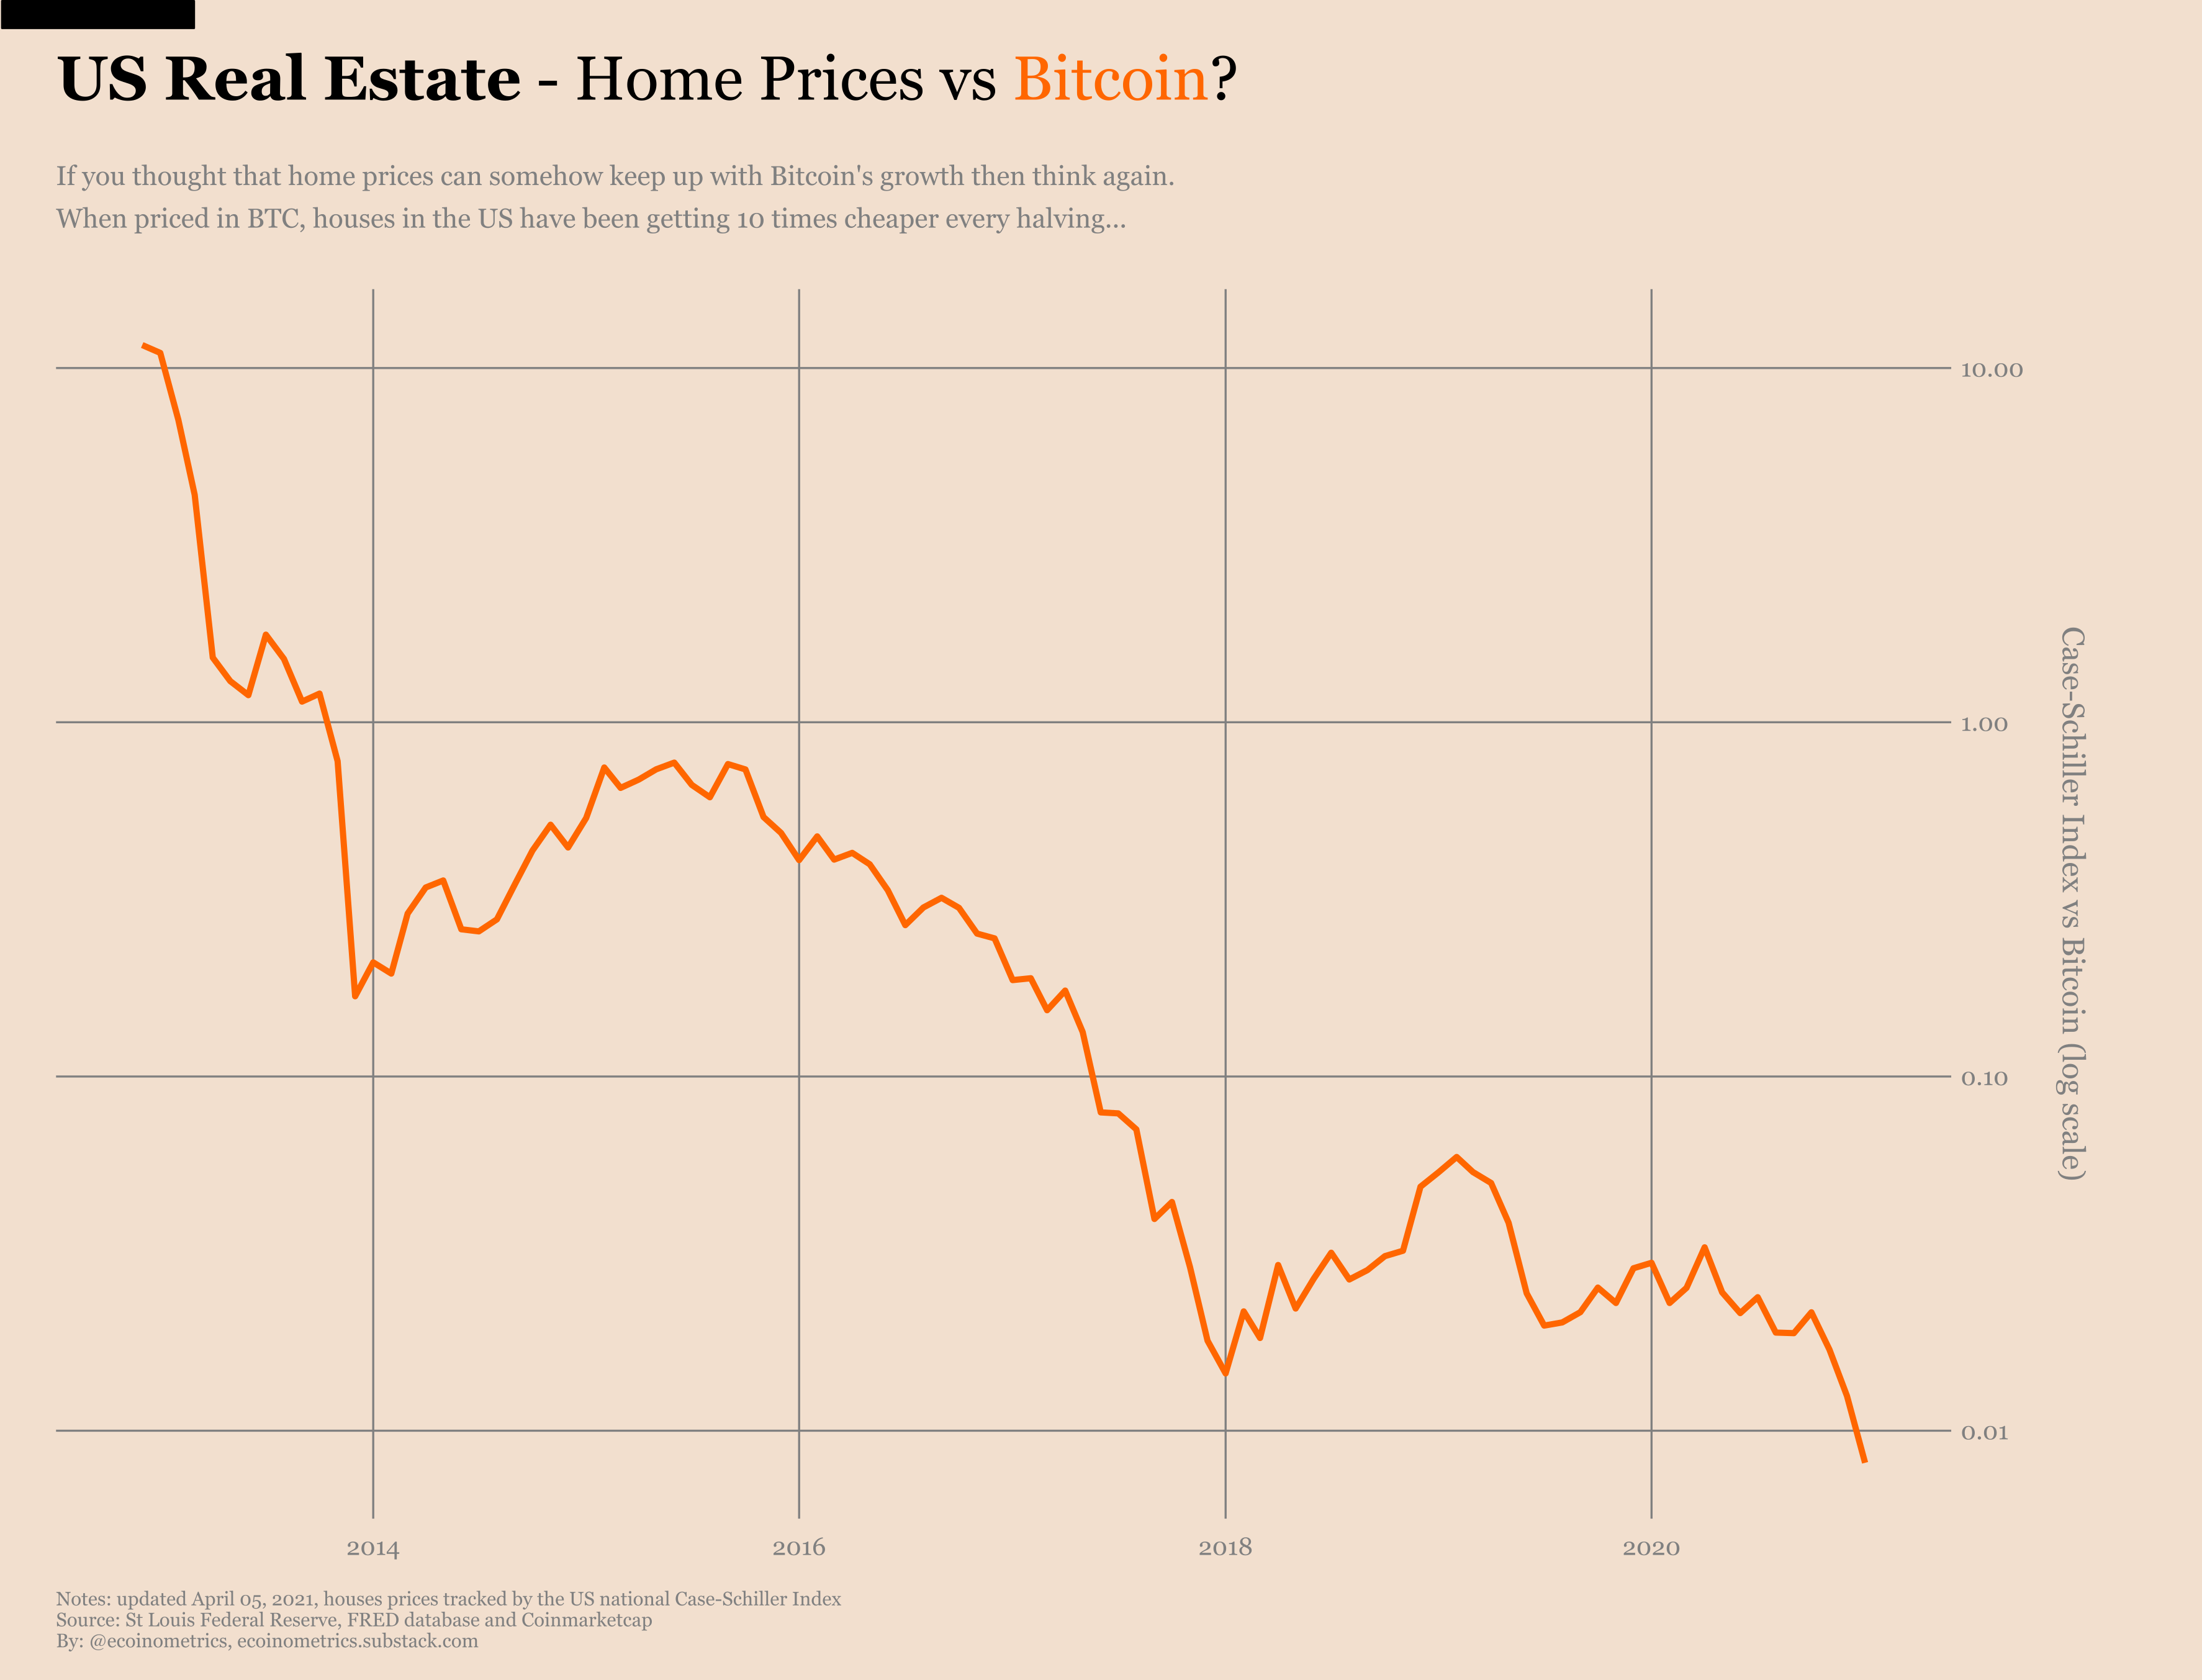 Real estate and Bitcoin: What you need to know